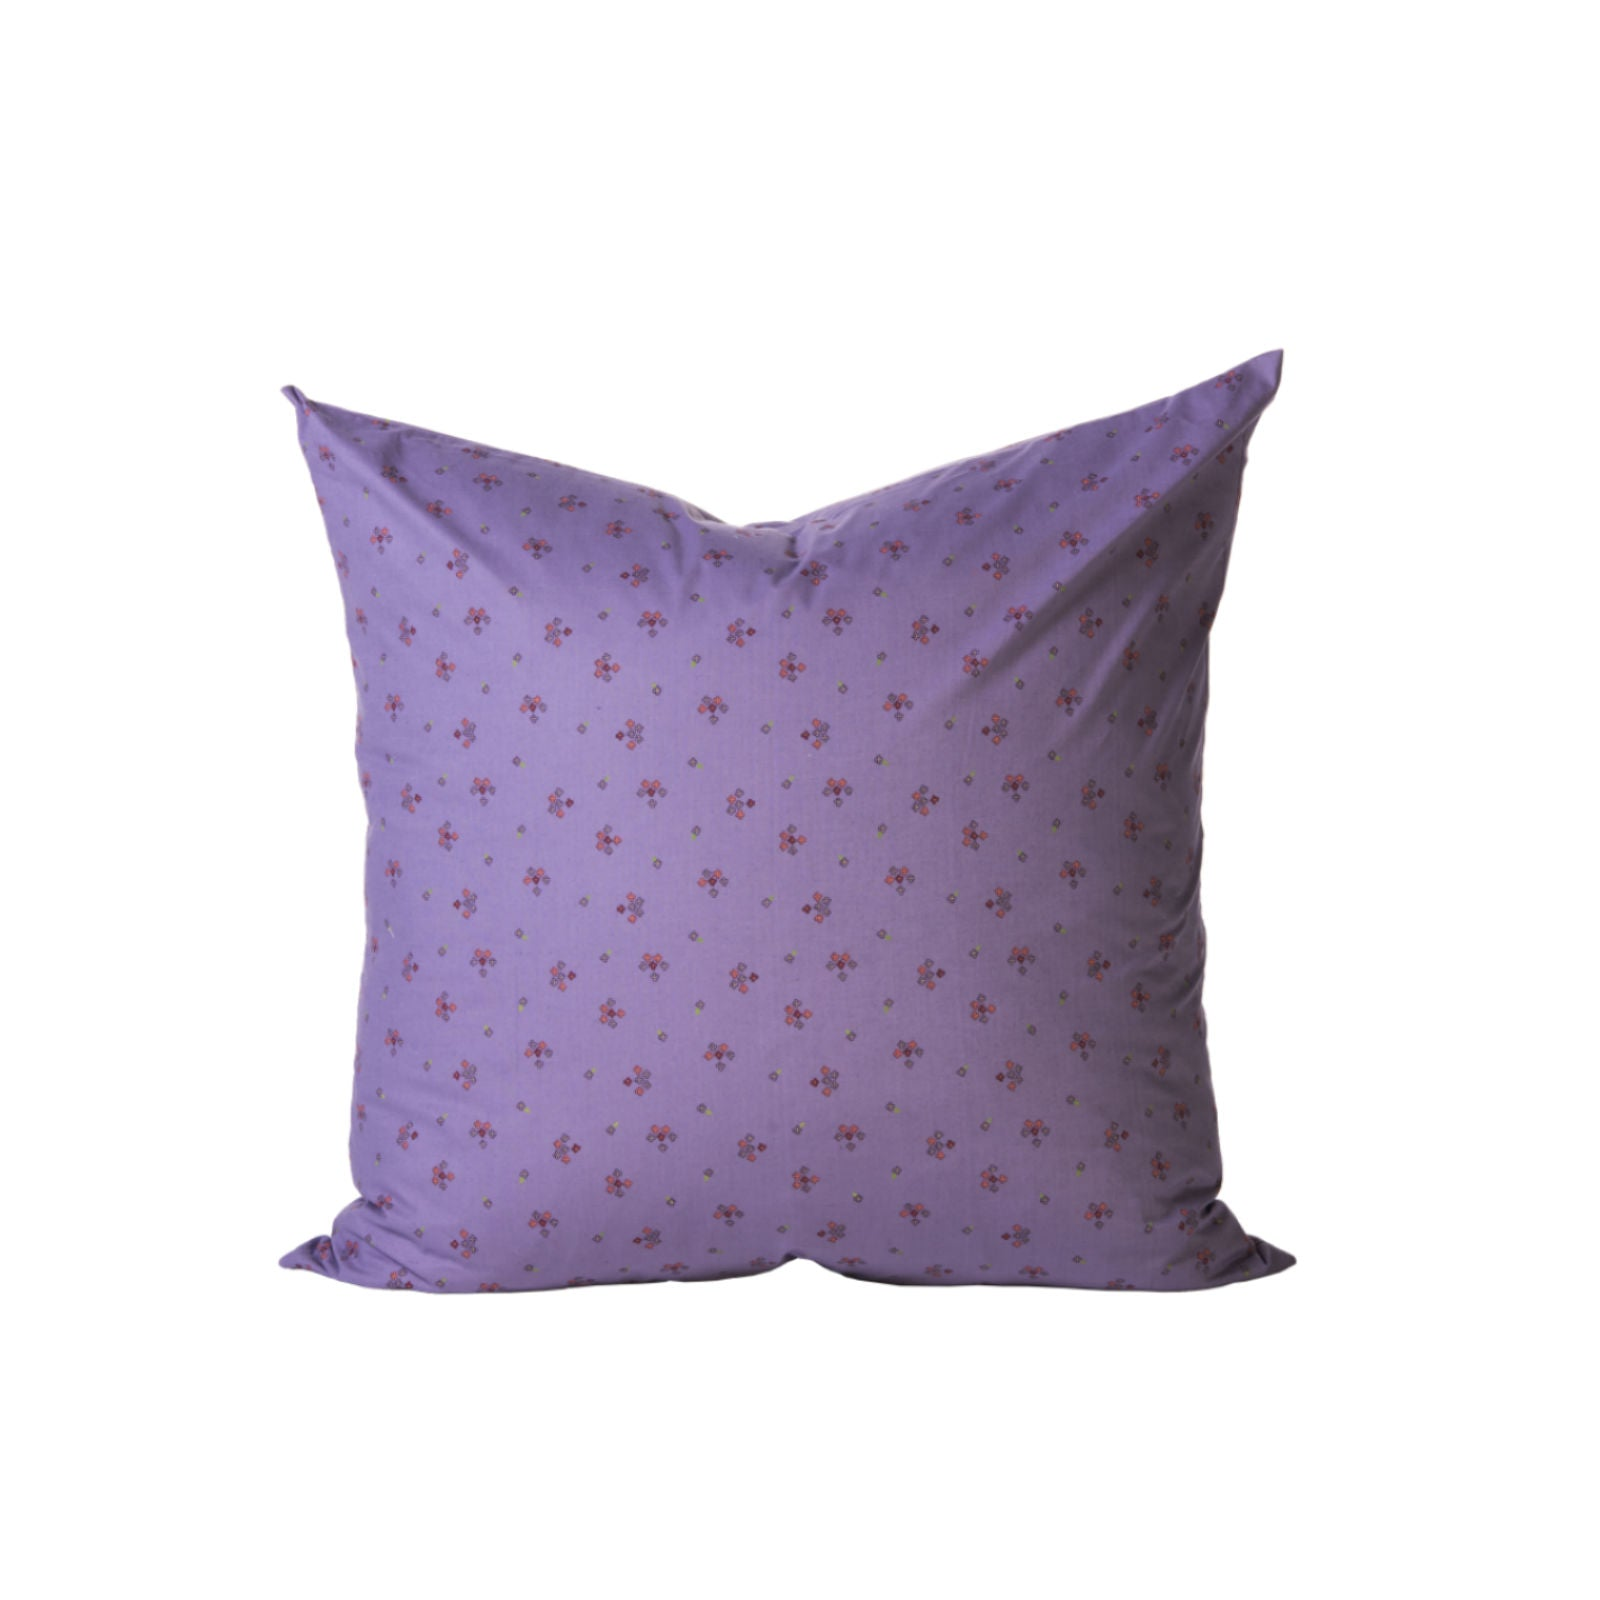 Lavender Floral Pillow